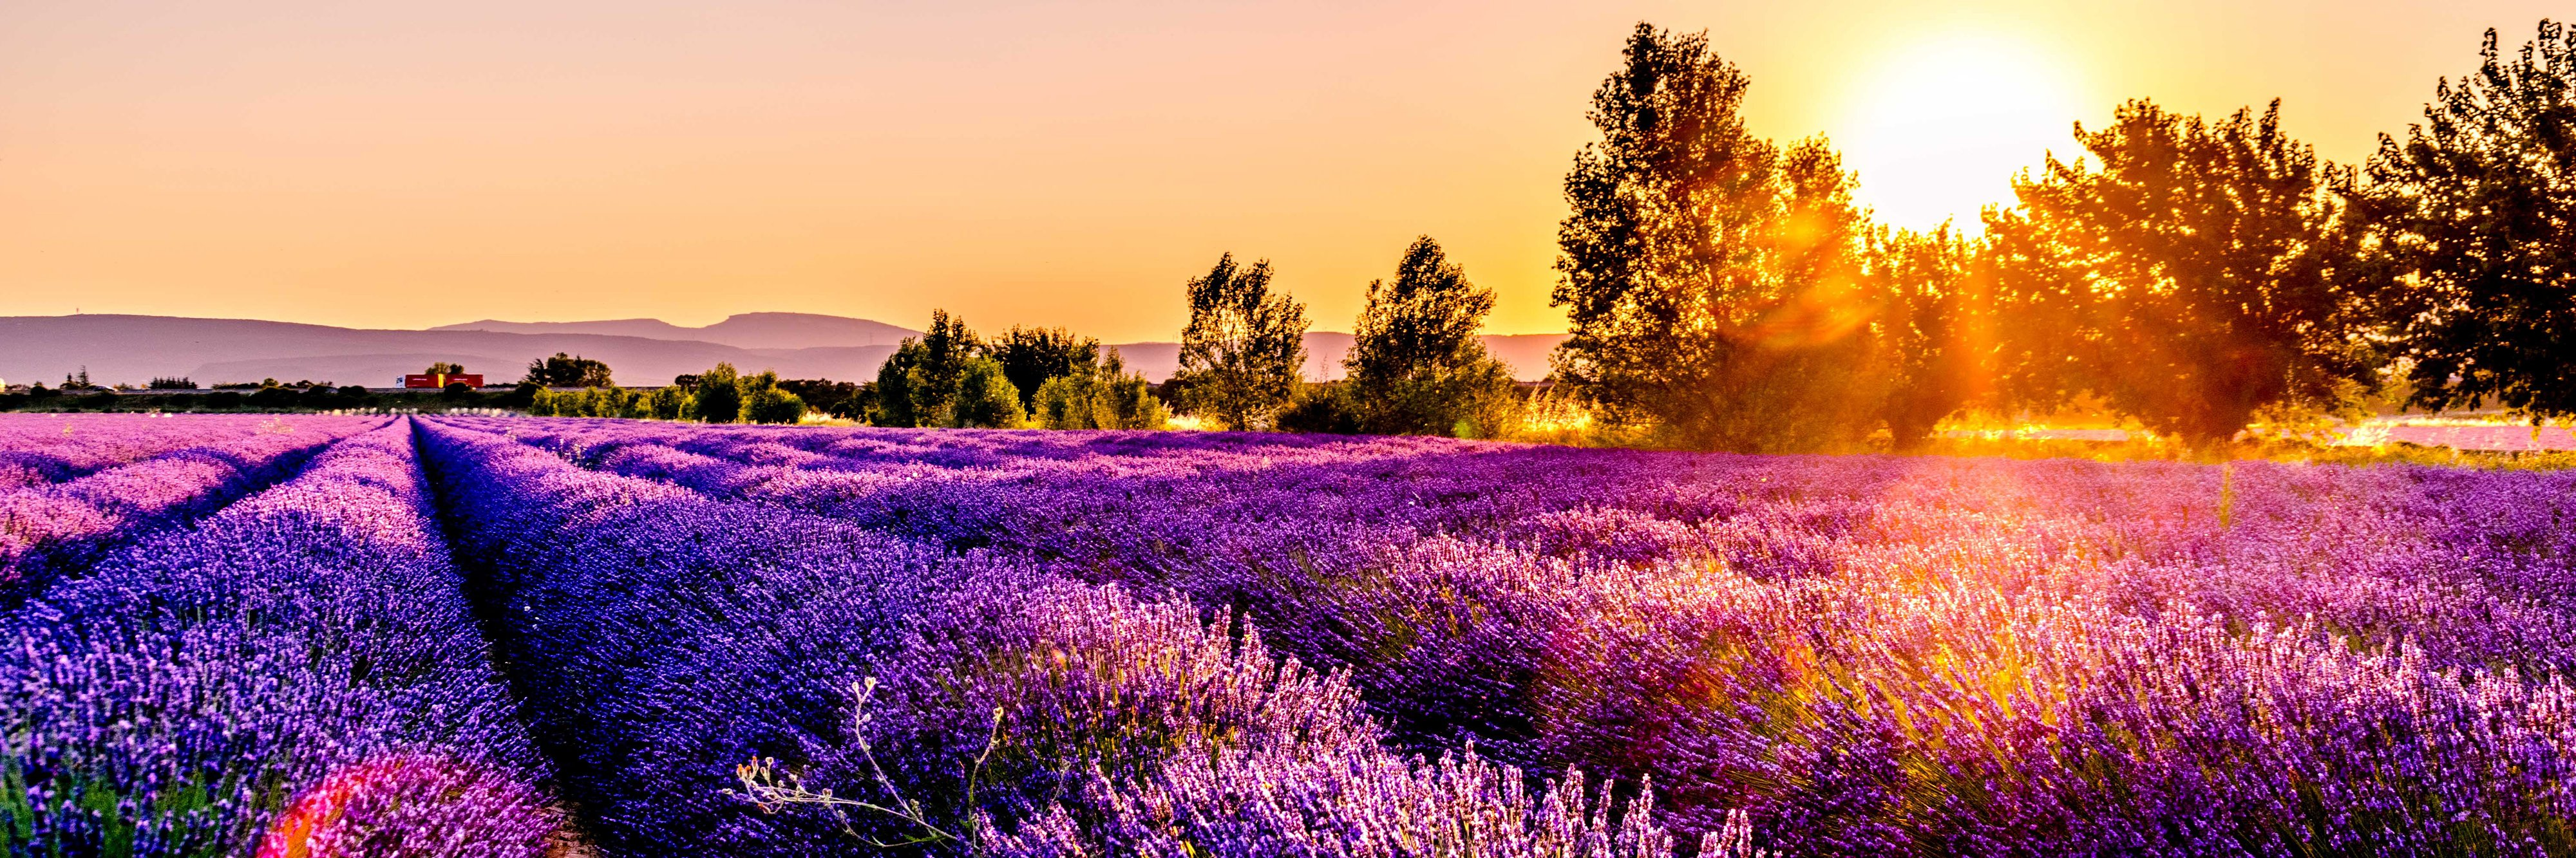 Sunset over a lavender field in Drôme, France